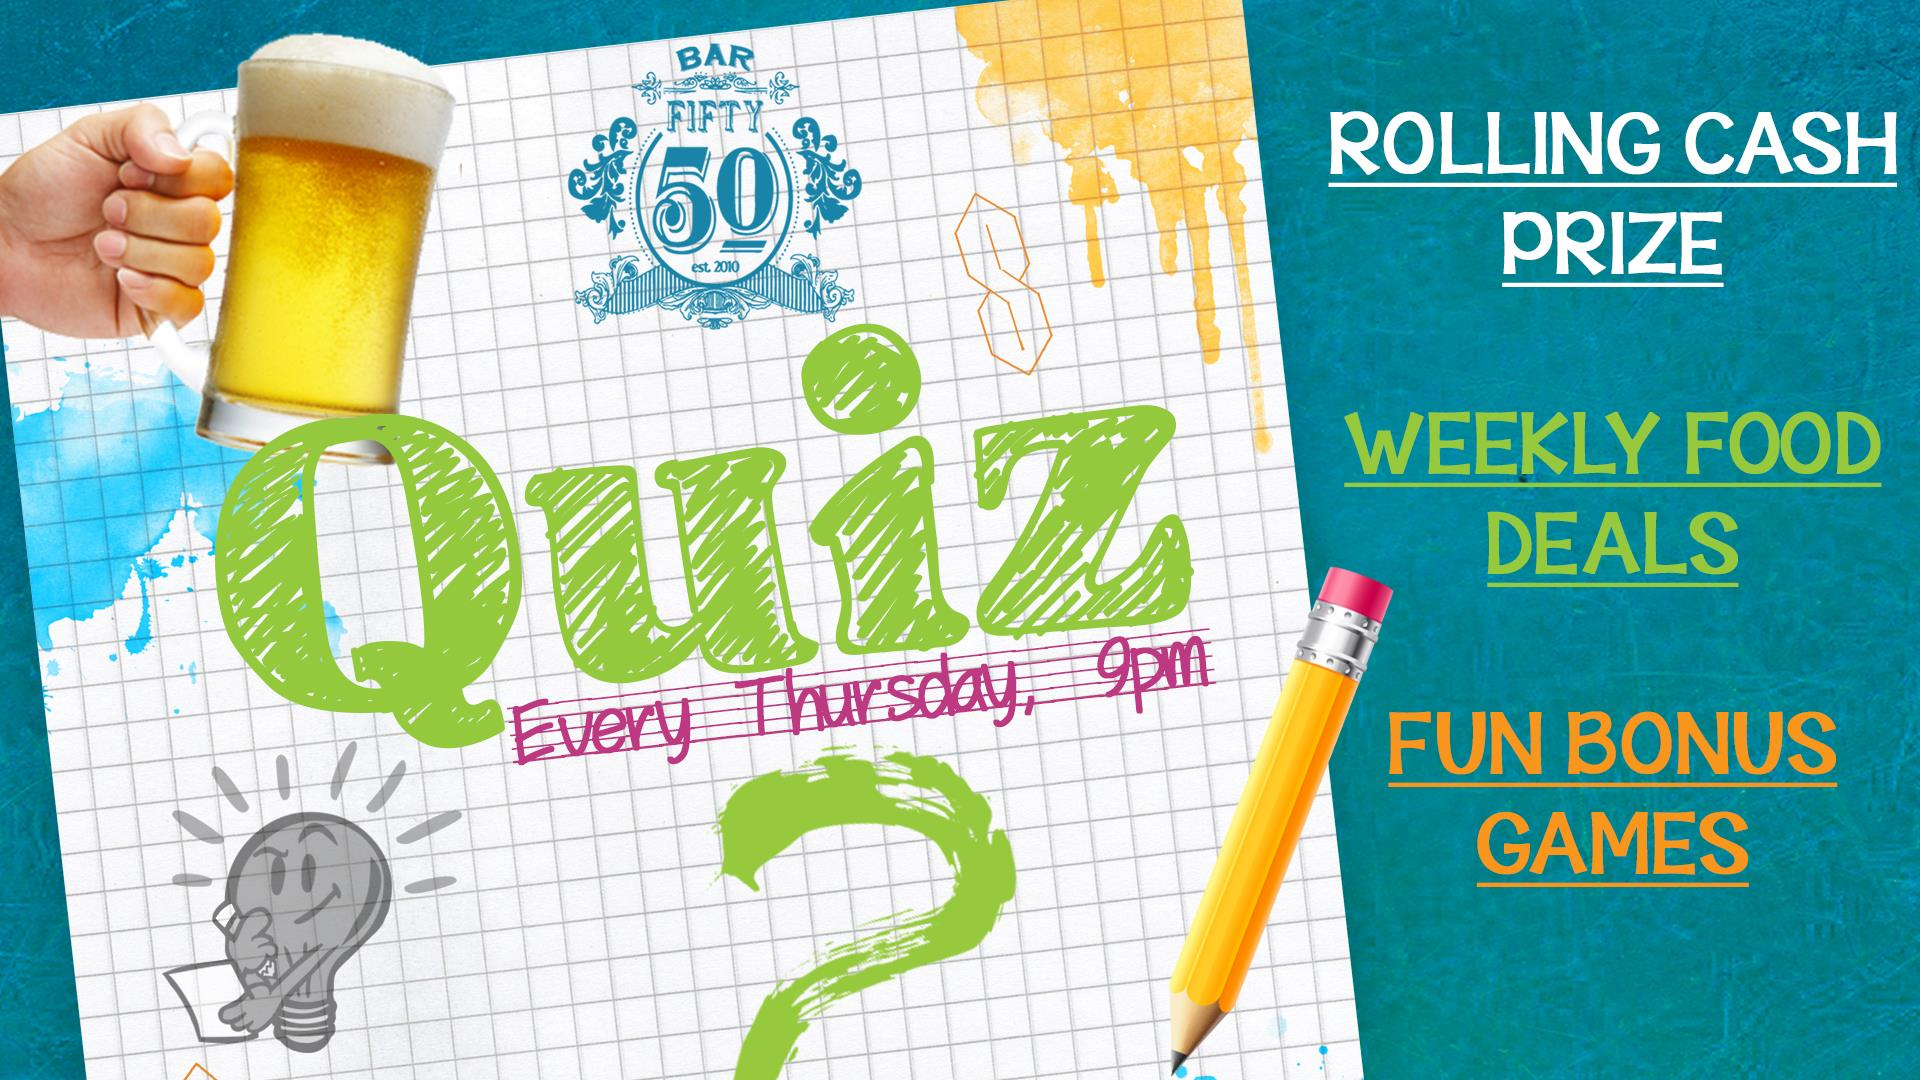 Weekly Quiz, Every Thursday 9PM